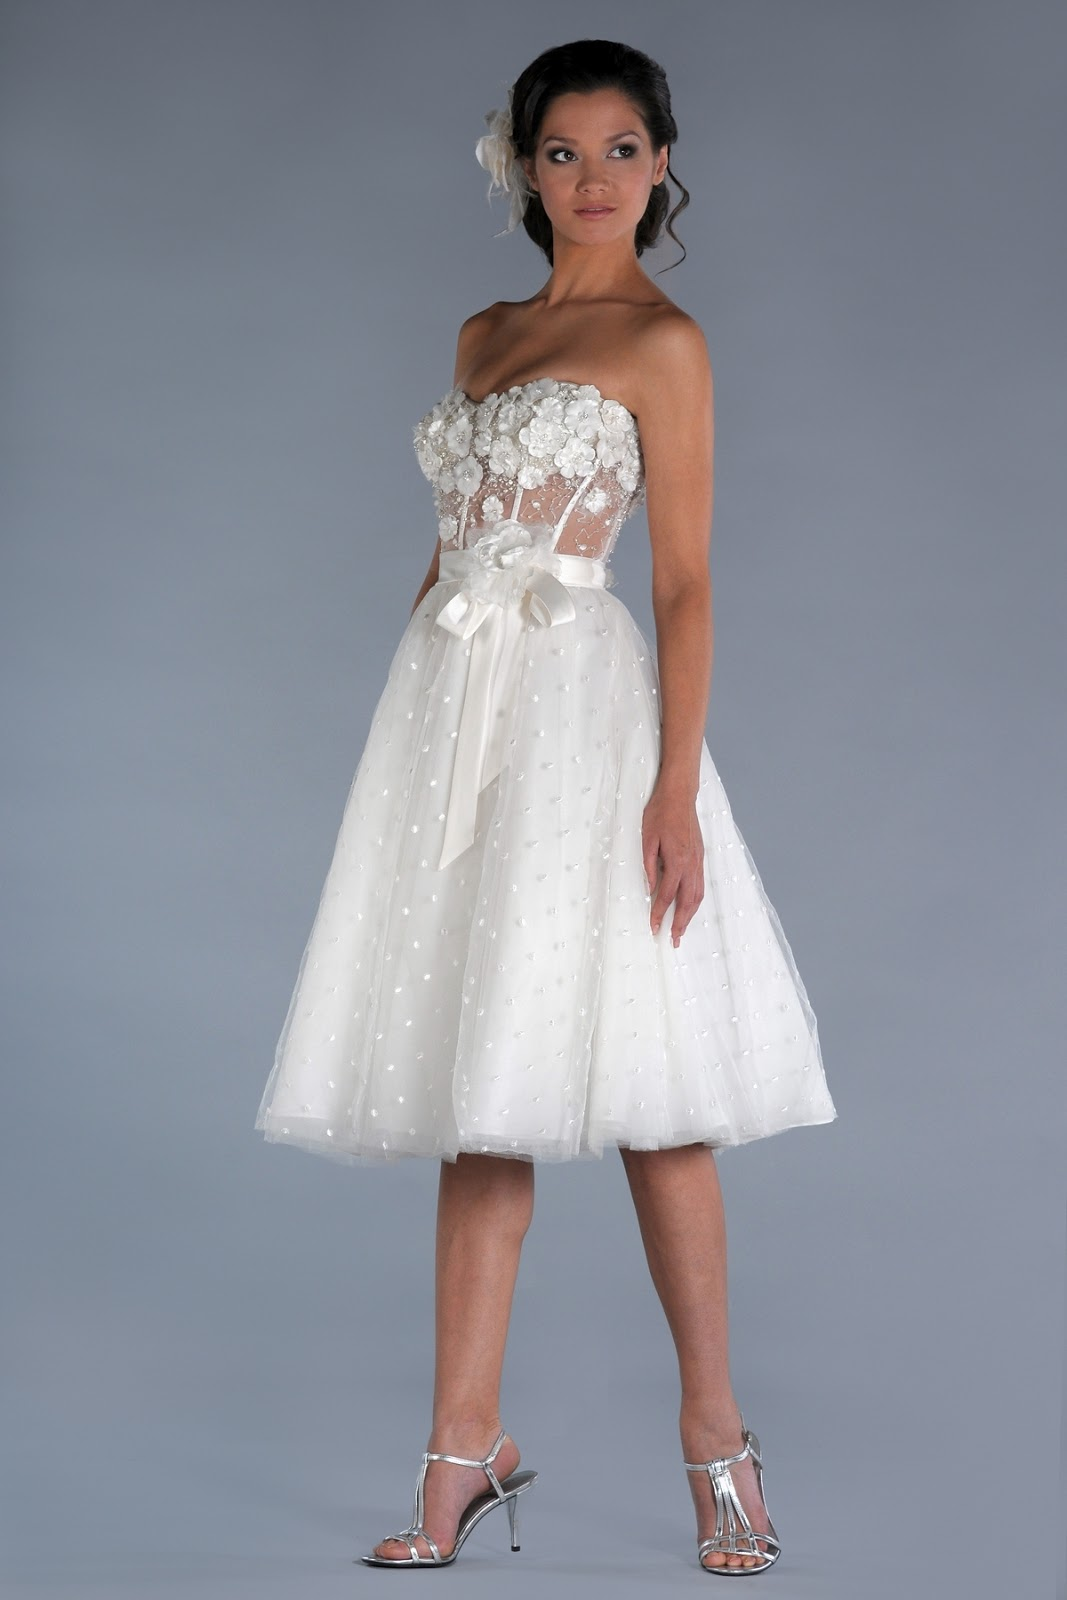 dressybridal 5 cute short wedding dresses for summer With short wedding dresses